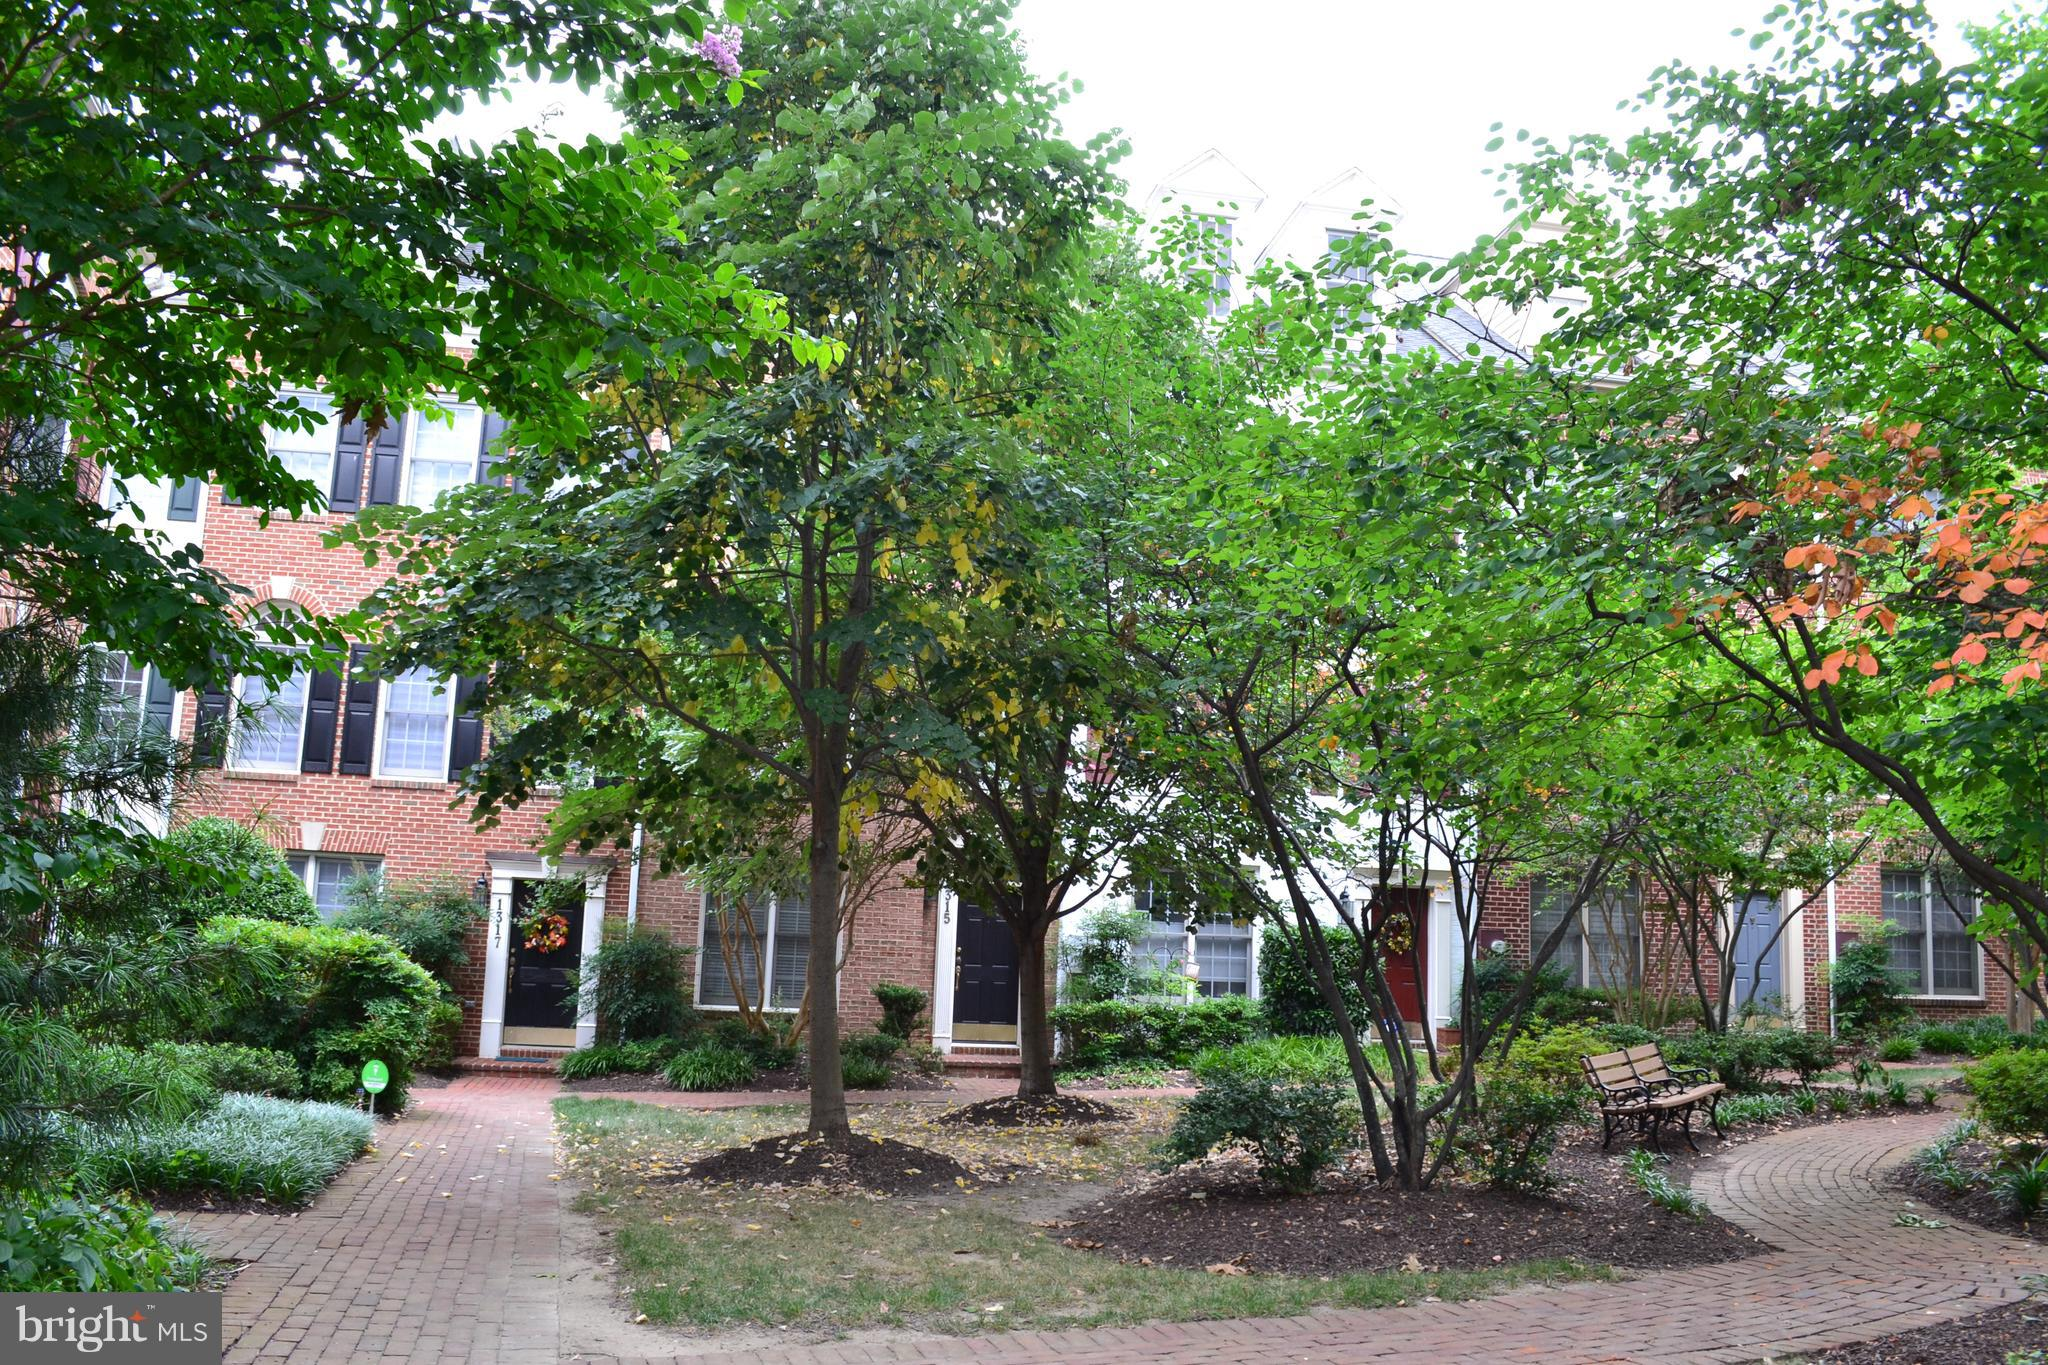 1317 CAMERON HILL COURT, SILVER SPRING, MD 20910